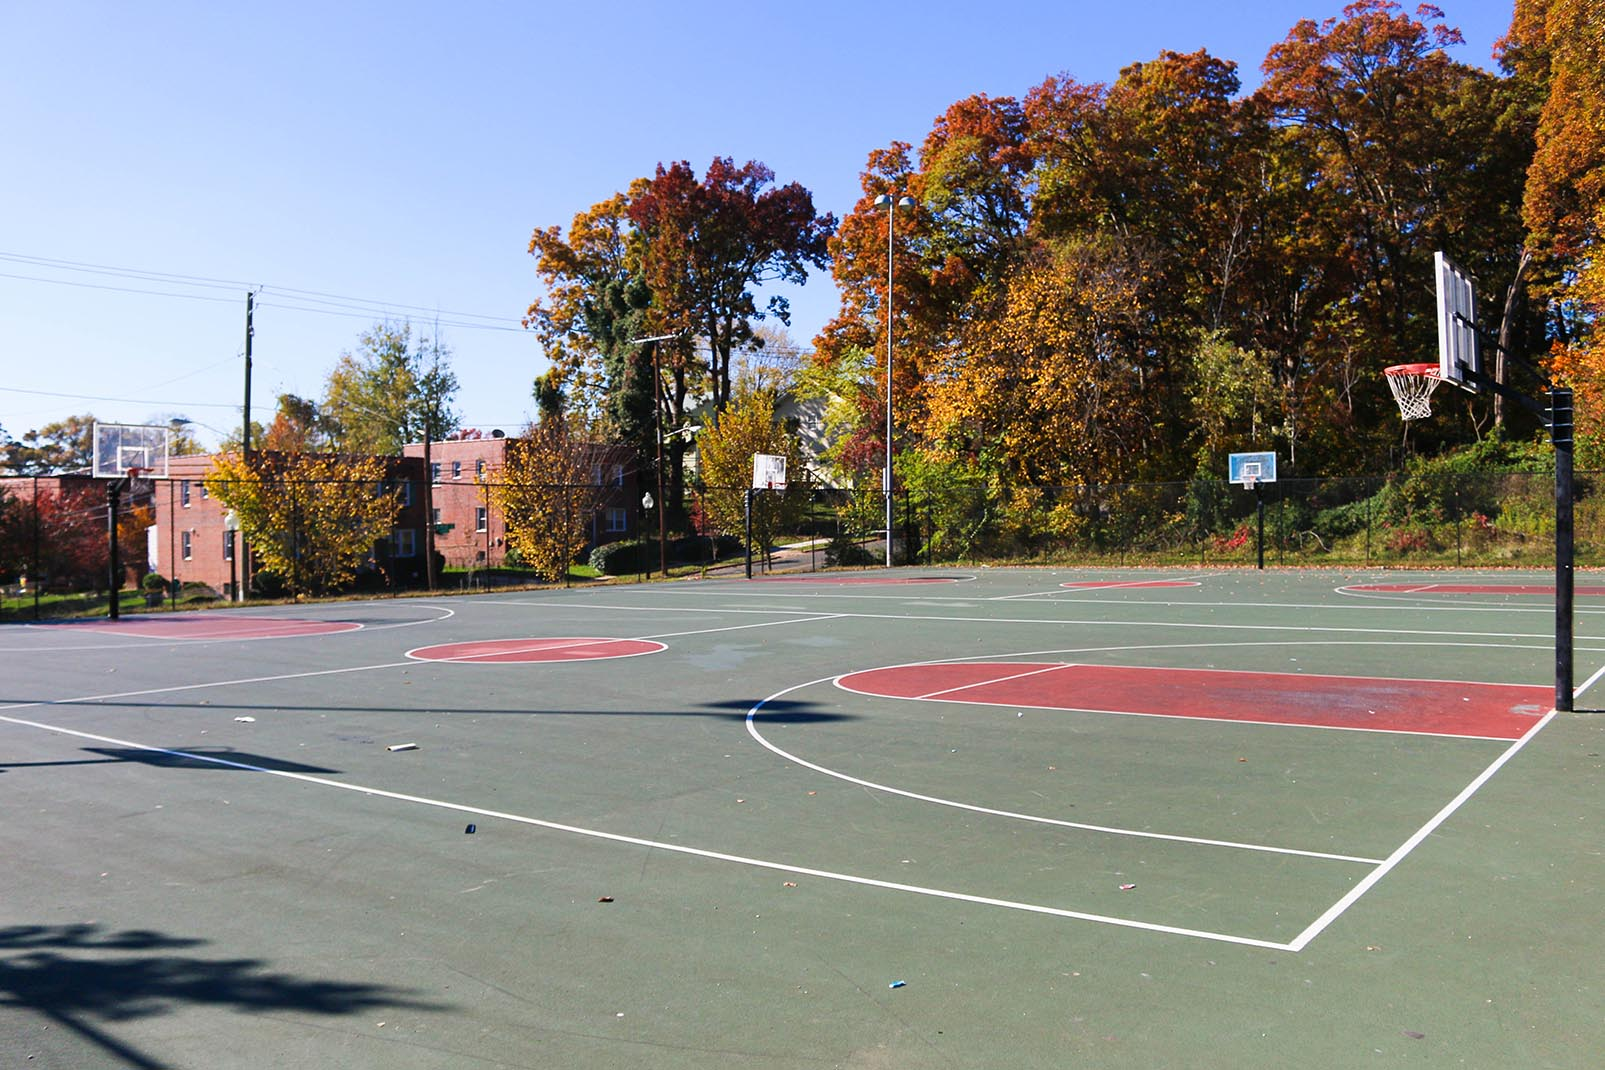 Basketball courts in Anacostia, Washington, DC